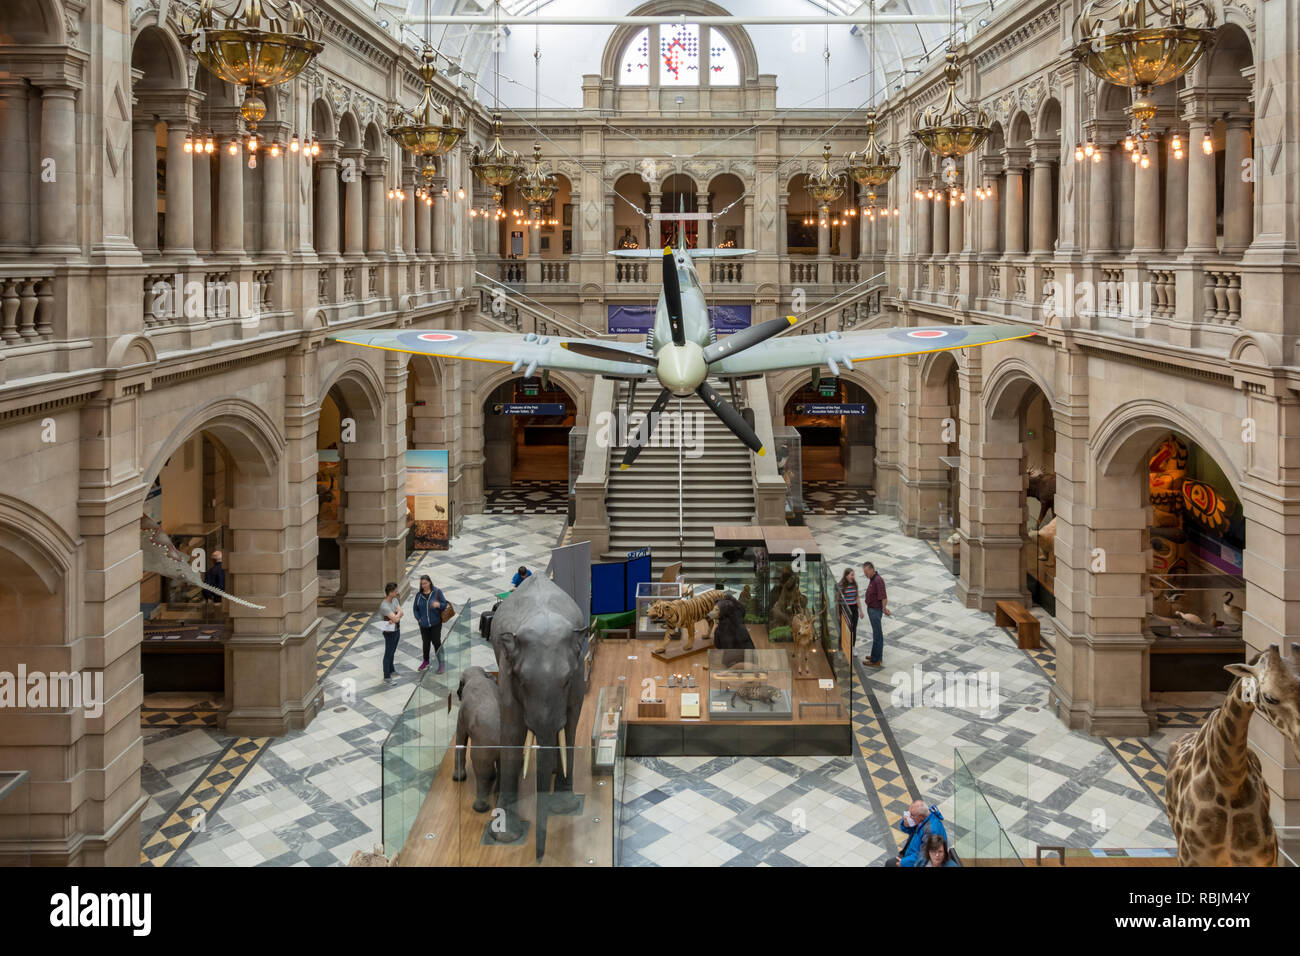 Glasgow, Scotland - May 19, 2018: Central view of Spitfire hall in Kelvingrove Art Gallery and Museum on May 19, 2018 in Glasgow, Scotland - Stock Image